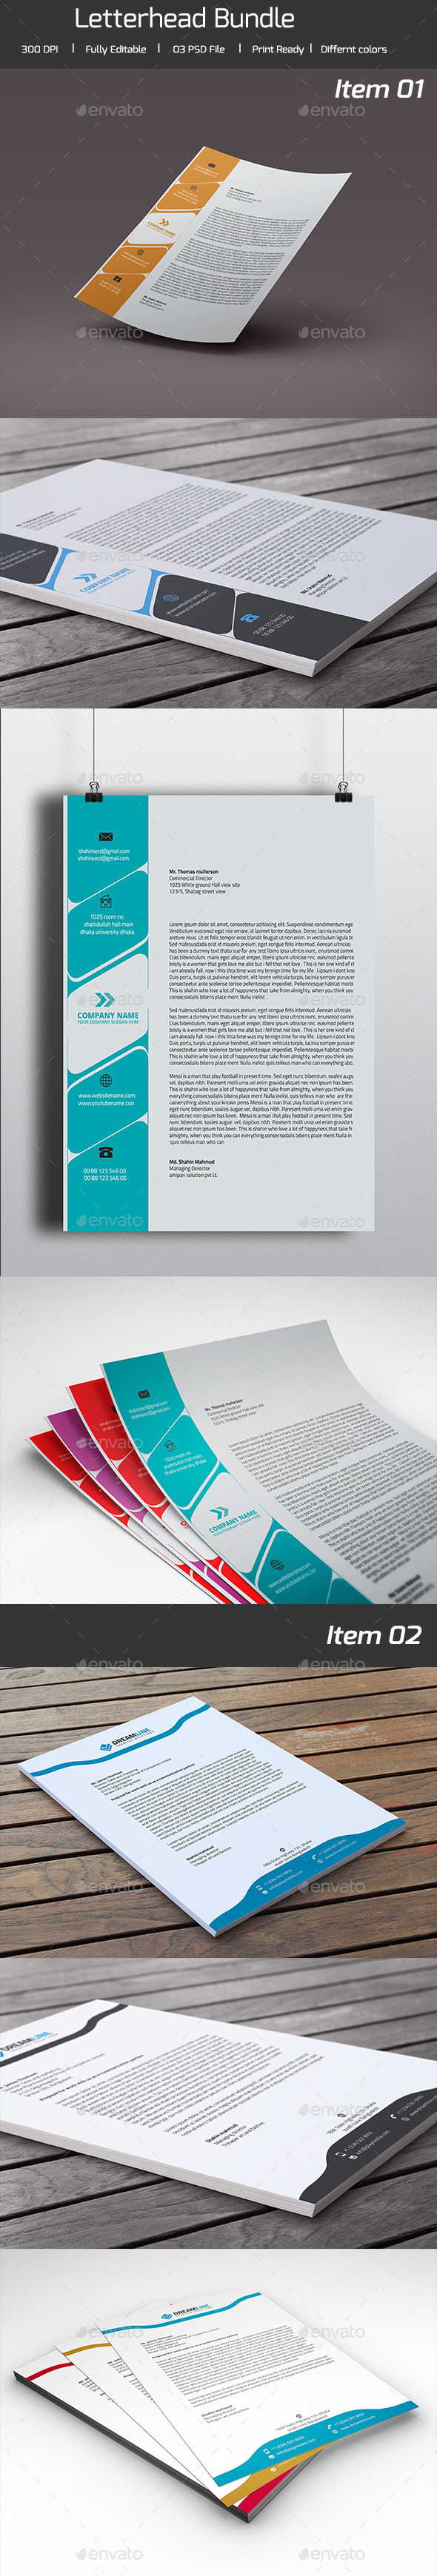 Bundle - 02 in 01 Letterhead Pad - Stationery Print Templates